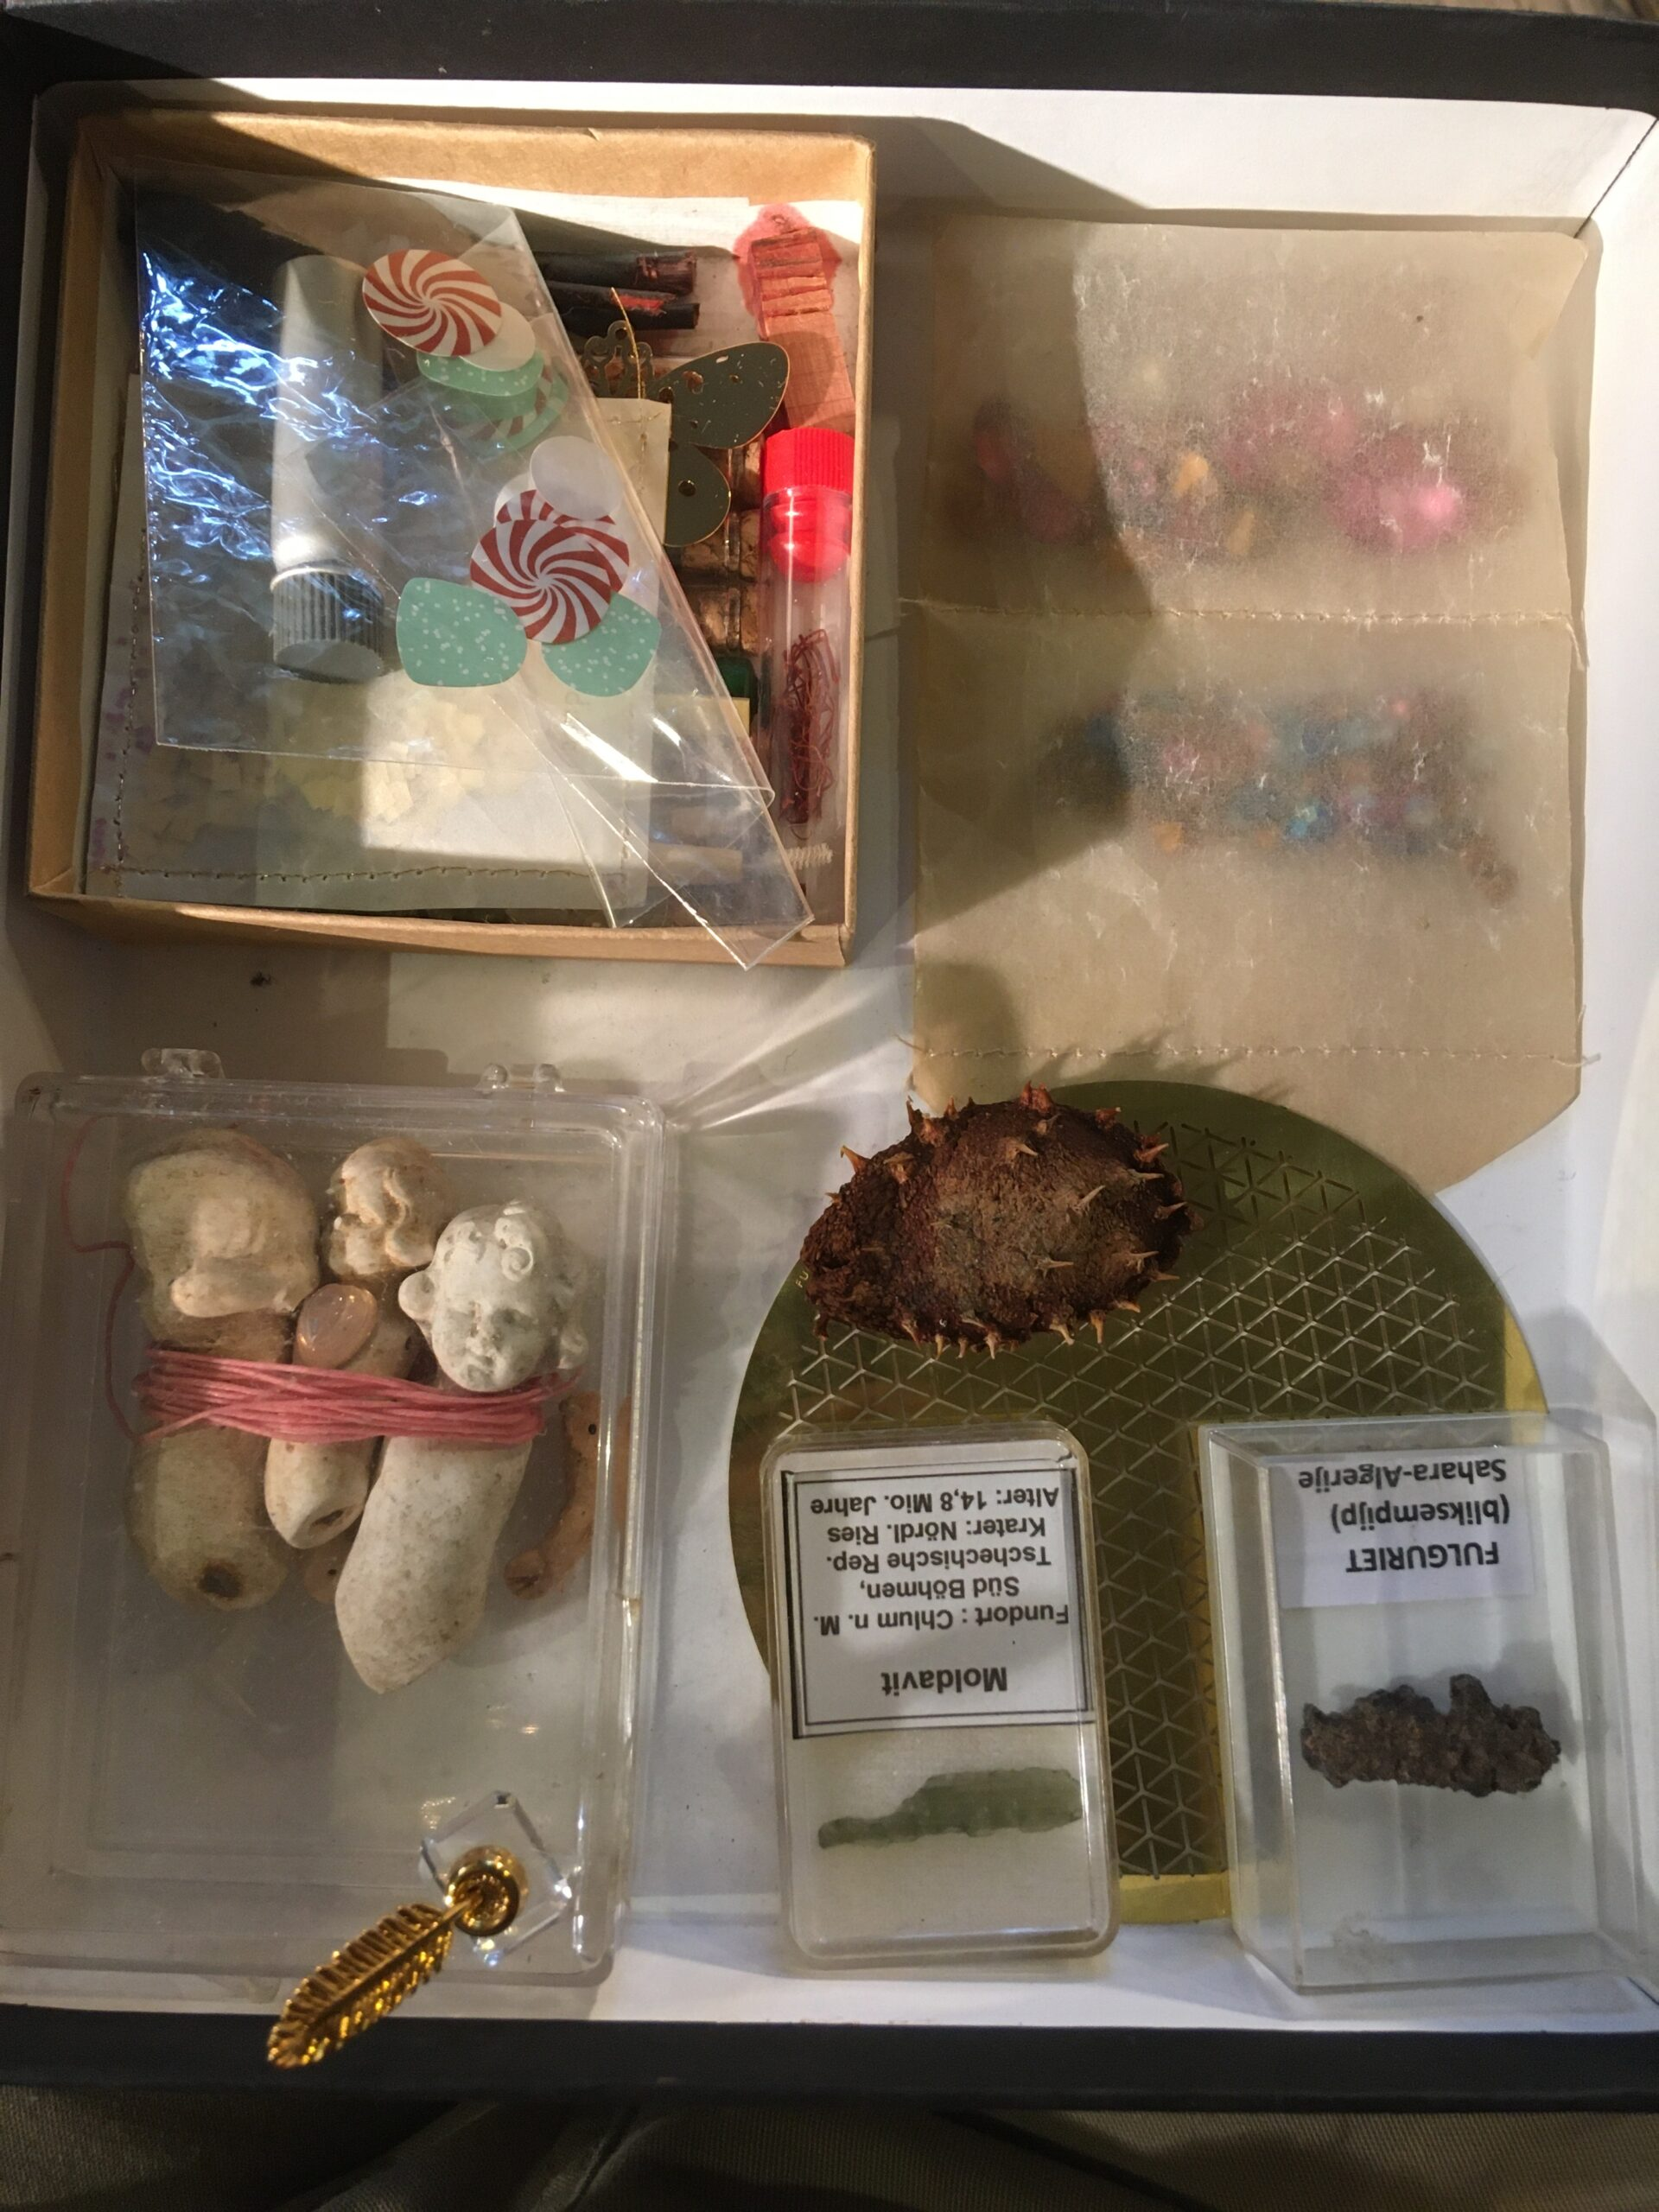 Eclectic collection of artifacts & 'elementals'